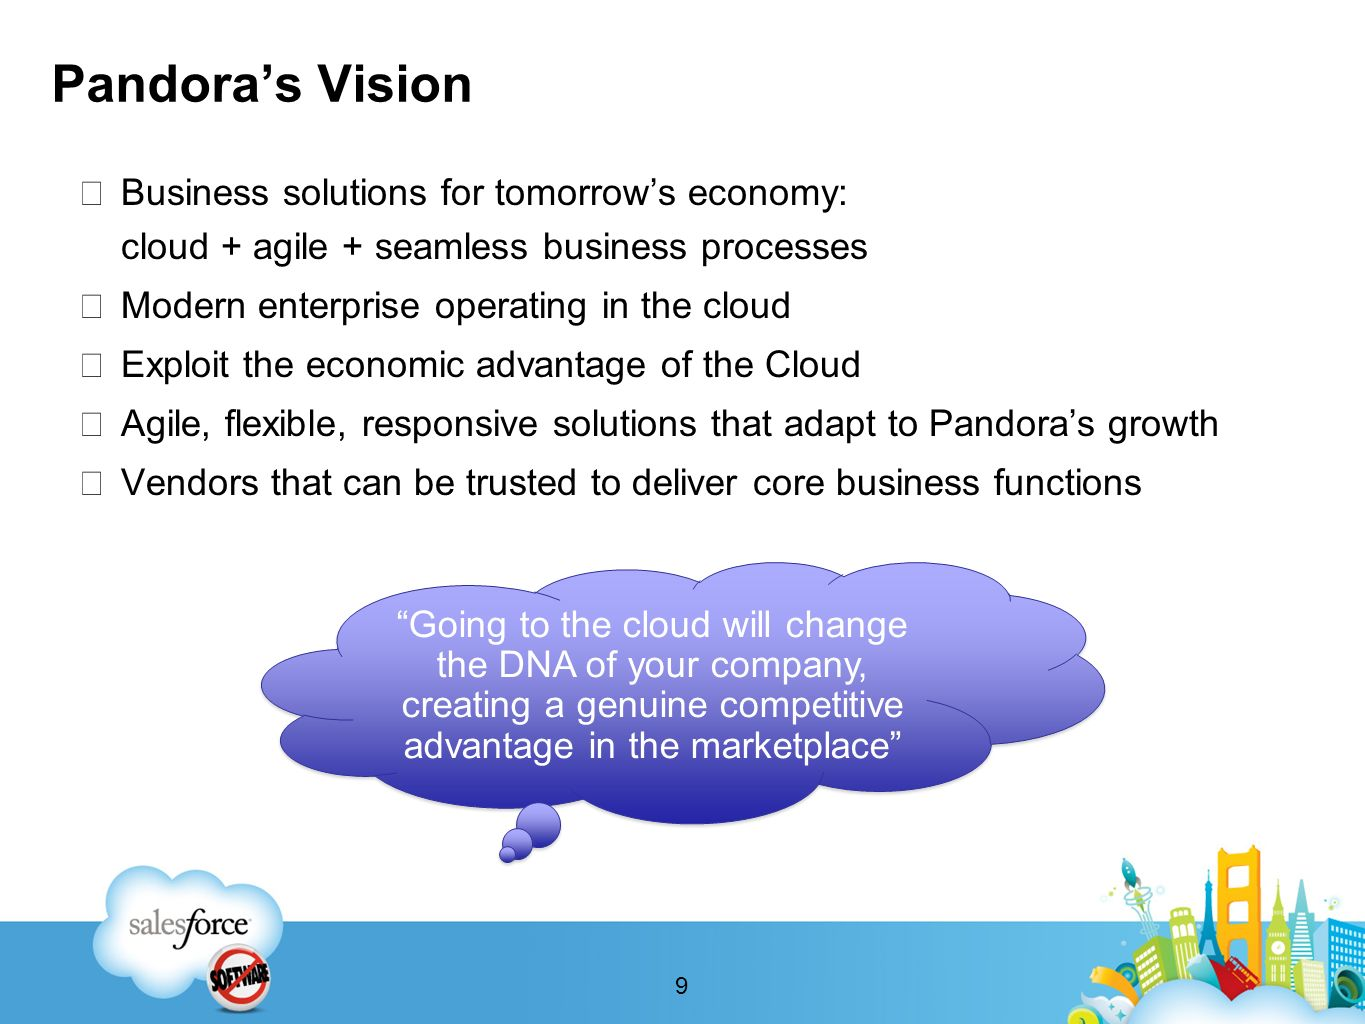 Pandoras Vision Business solutions for tomorrows economy: cloud + agile + seamless business processes Modern enterprise operating in the cloud Exploit the economic advantage of the Cloud Agile, flexible, responsive solutions that adapt to Pandoras growth Vendors that can be trusted to deliver core business functions Going to the cloud will change the DNA of your company, creating a genuine competitive advantage in the marketplace 9